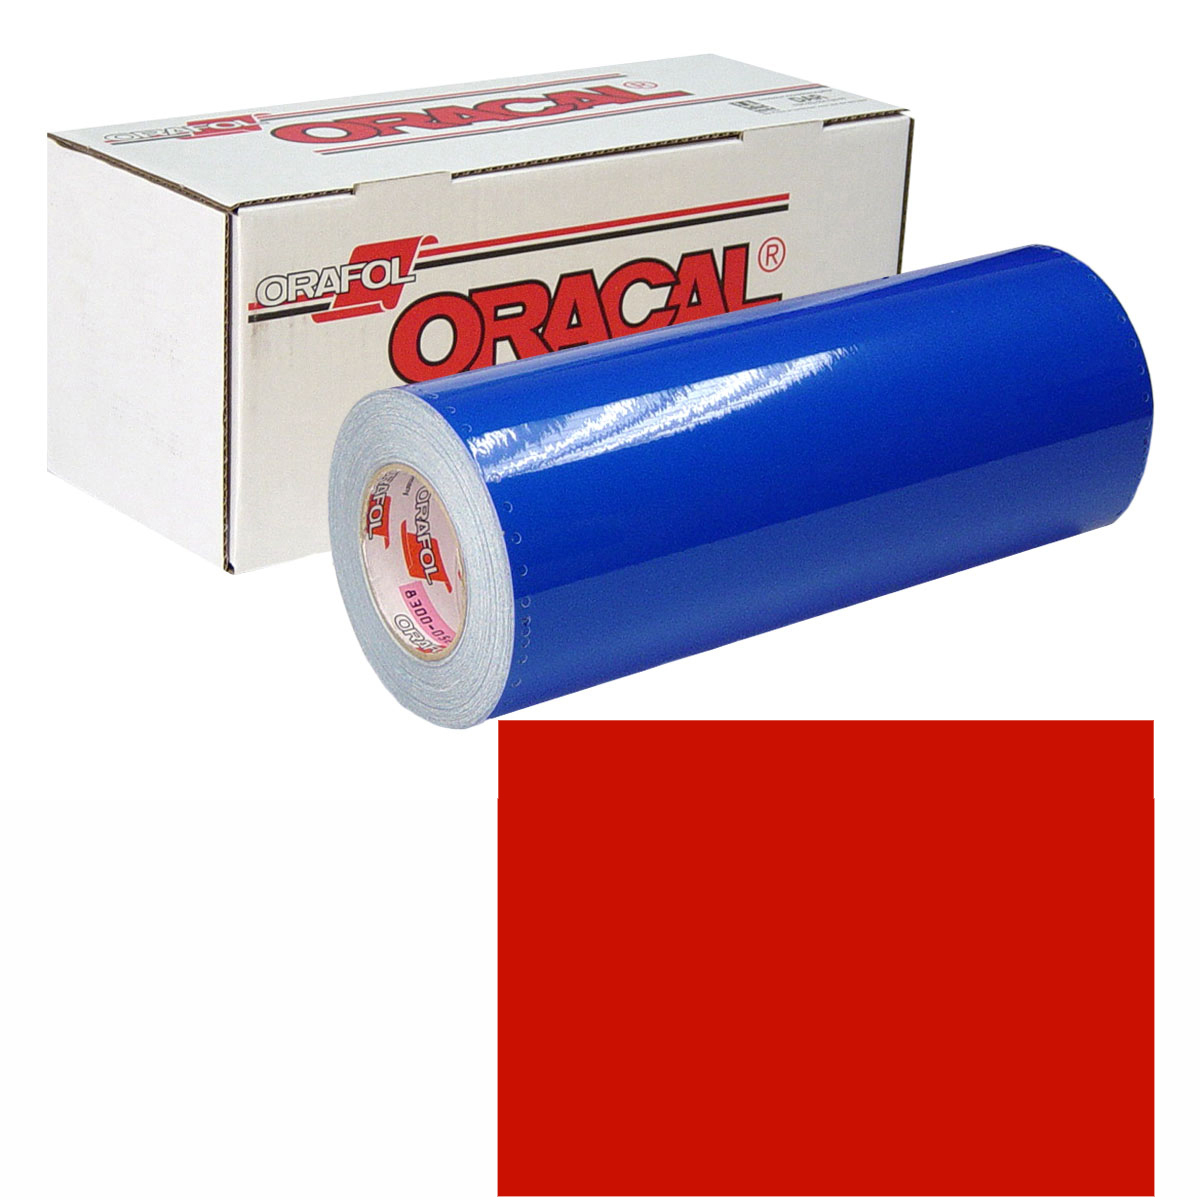 ORACAL 631 Unp 48in X 50yd 032 Light Red